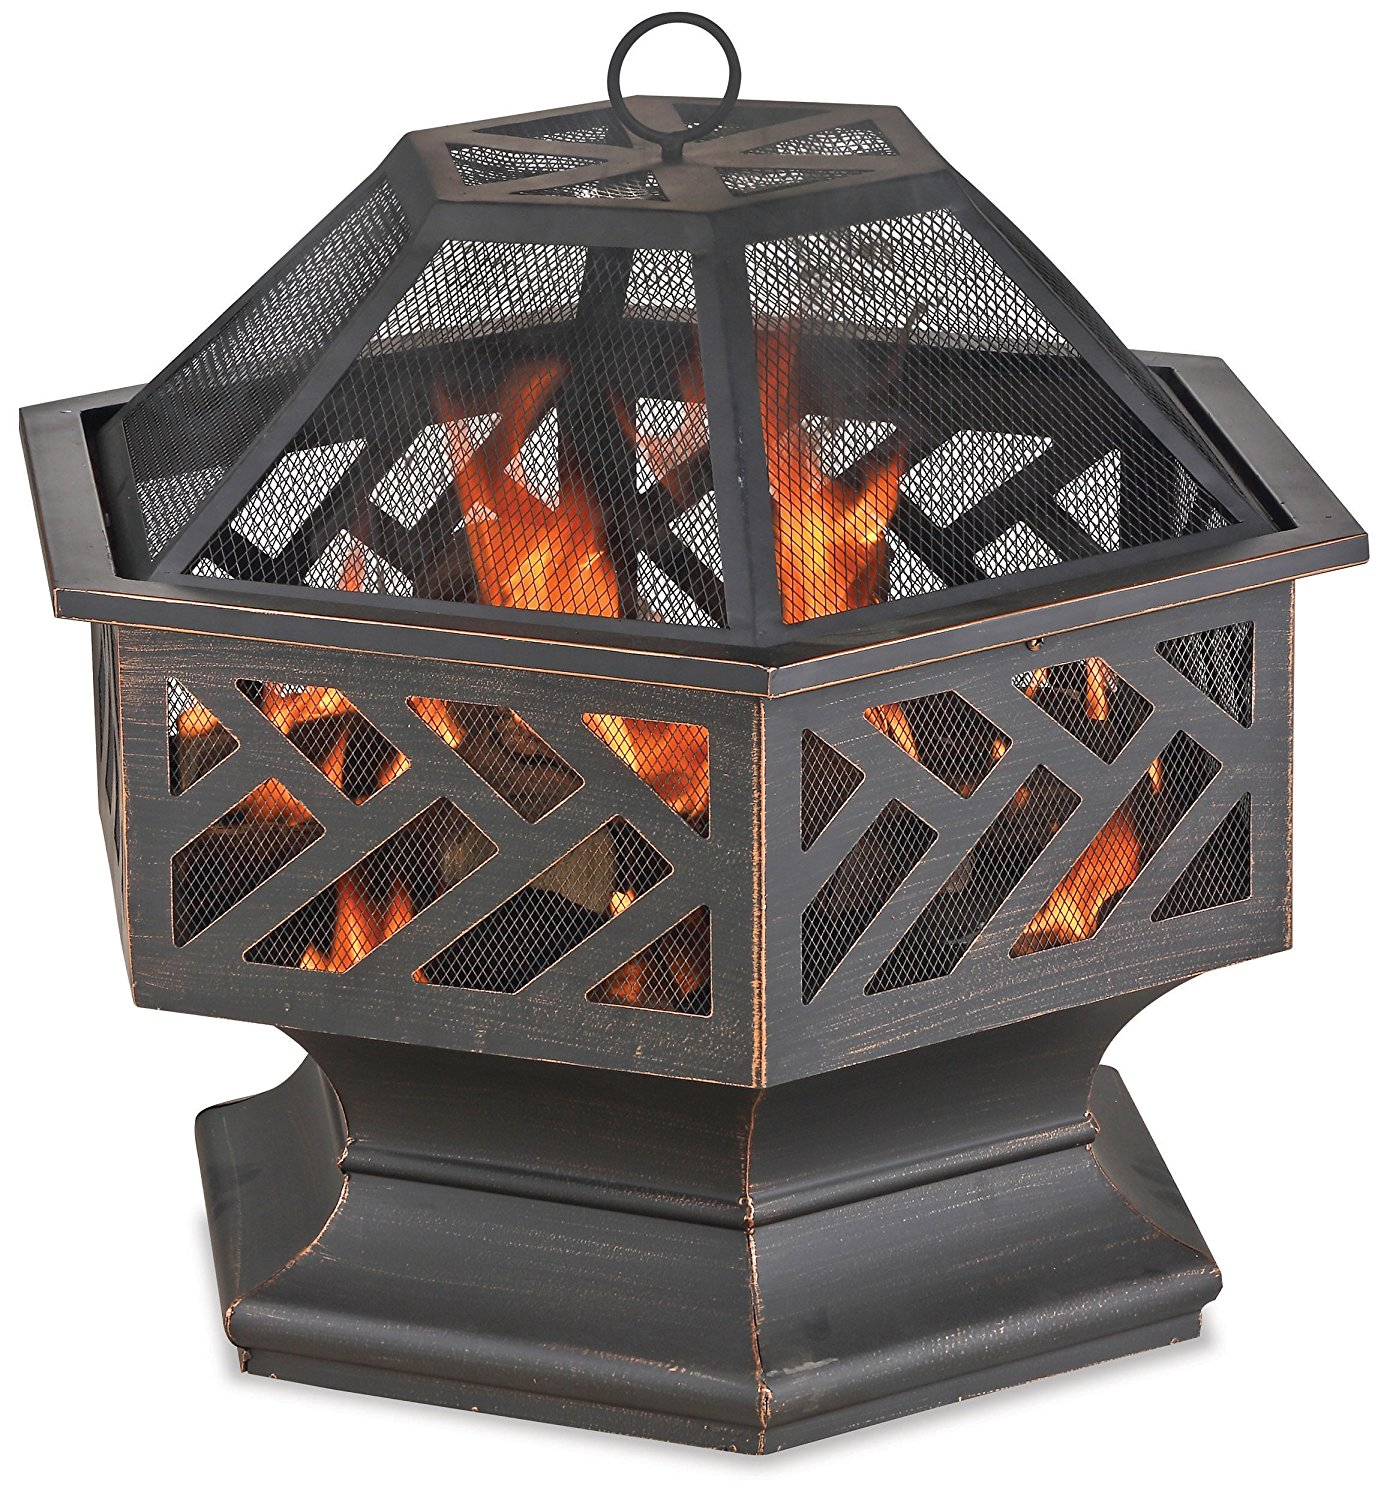 Oil Rubbed Bronze Wood Burning Outdoor Firebowl with Geometric Design